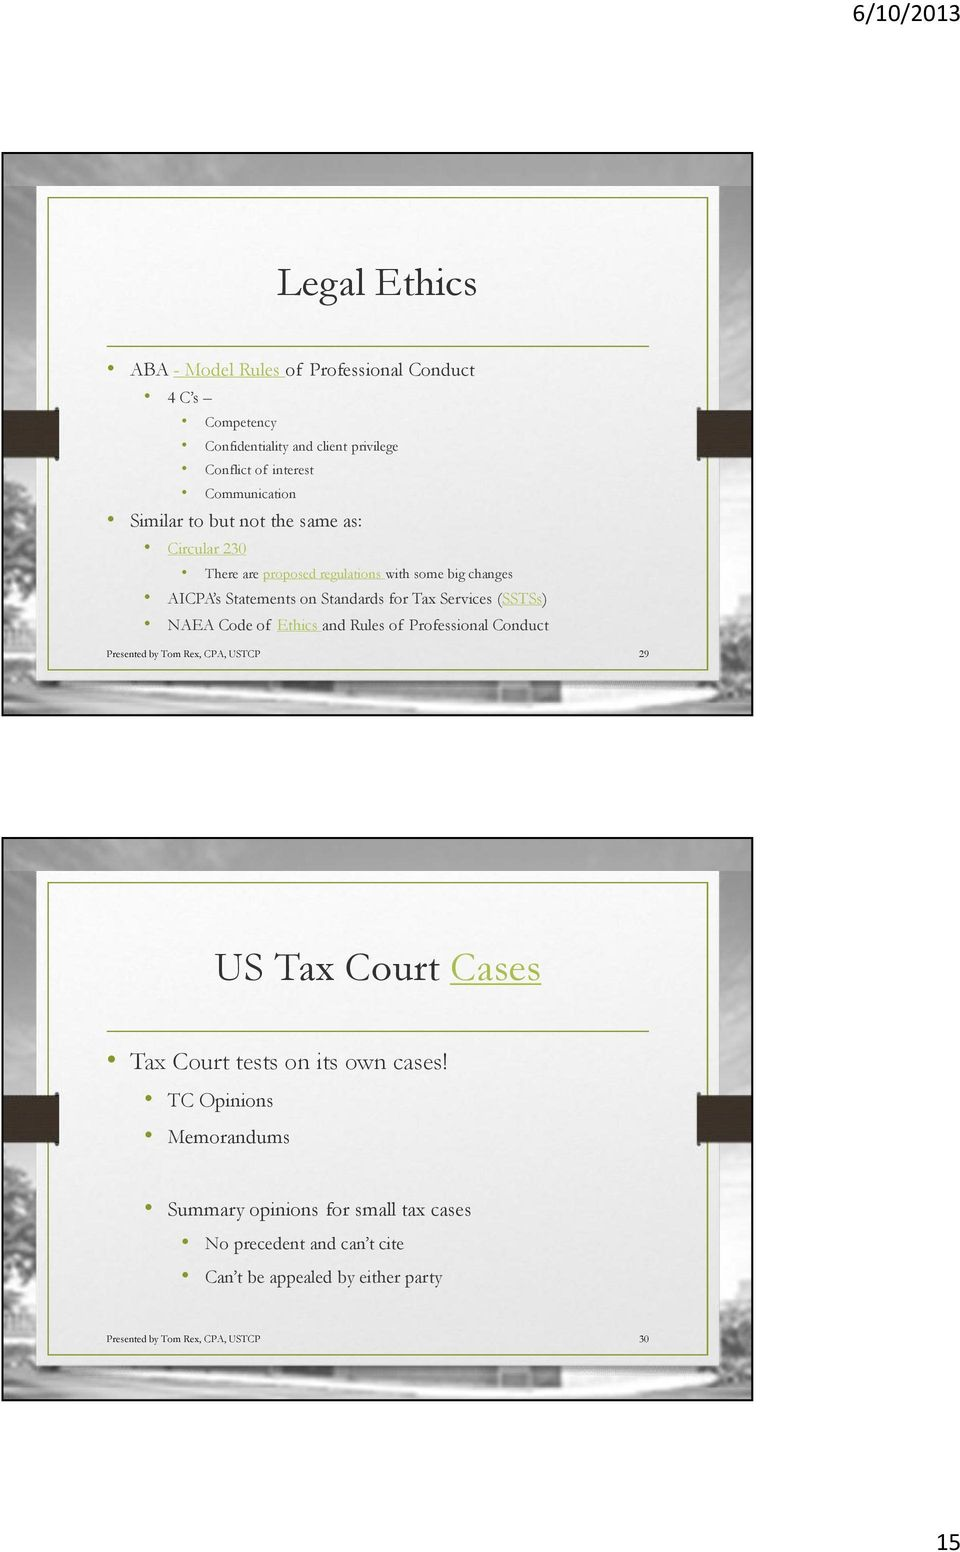 (SSTSs) NAEA Code of Ethics and Rules of Professional Conduct Presented by Tom Rex, CPA, USTCP 29 US Tax Court Cases Tax Court tests on its own cases!